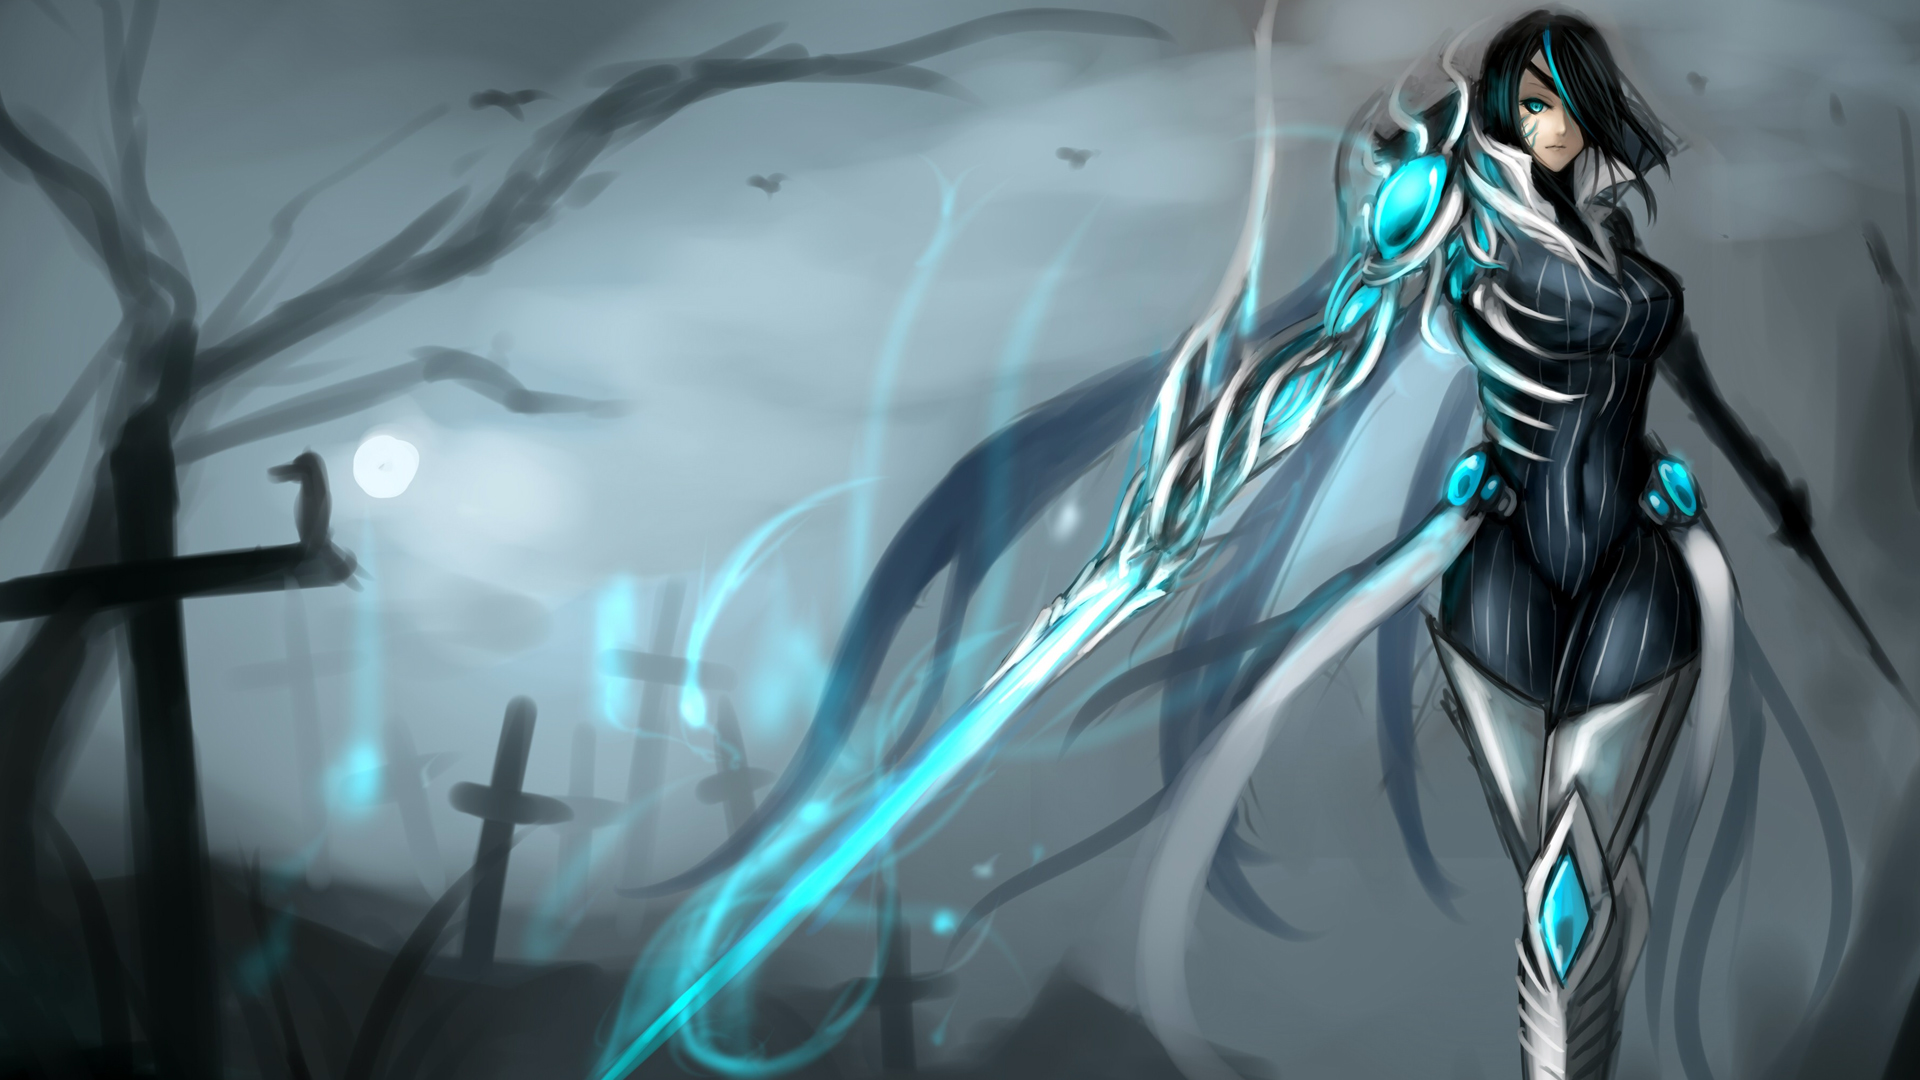 Fiora Art LoL Wallpaper HD